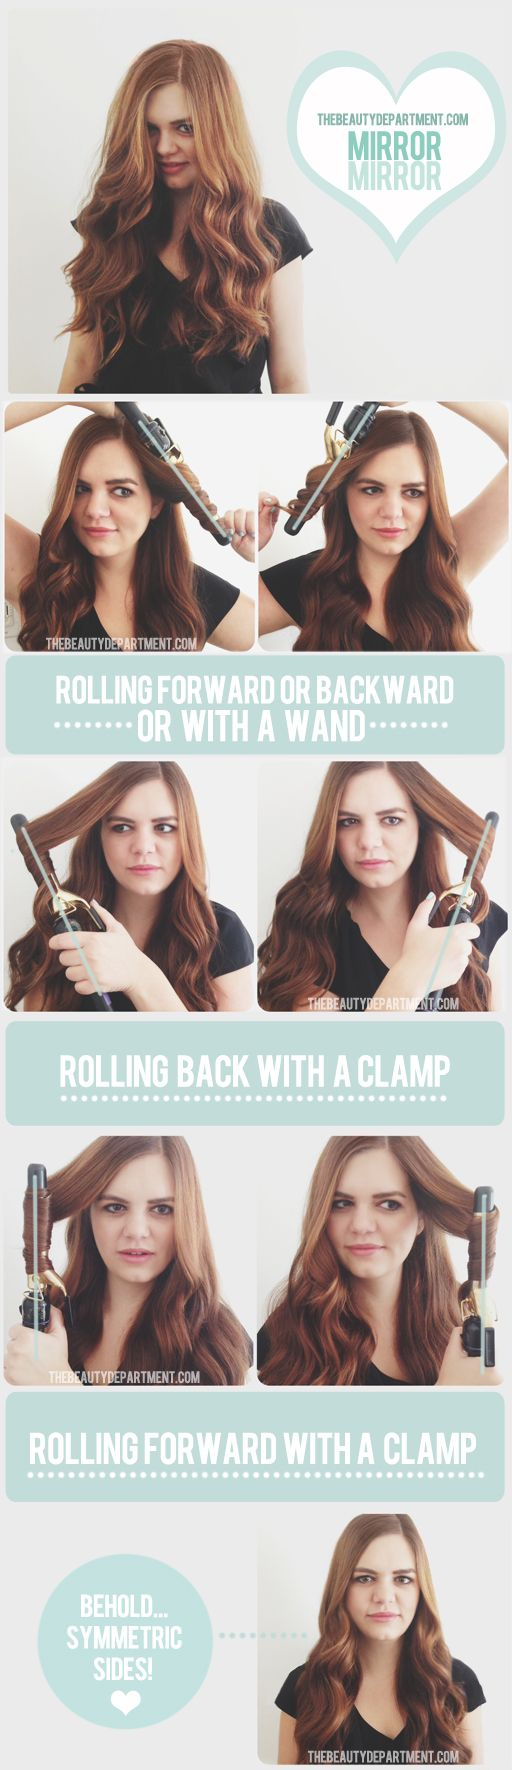 8 Simple Curling Tips To Make Curls Last Longer forecasting